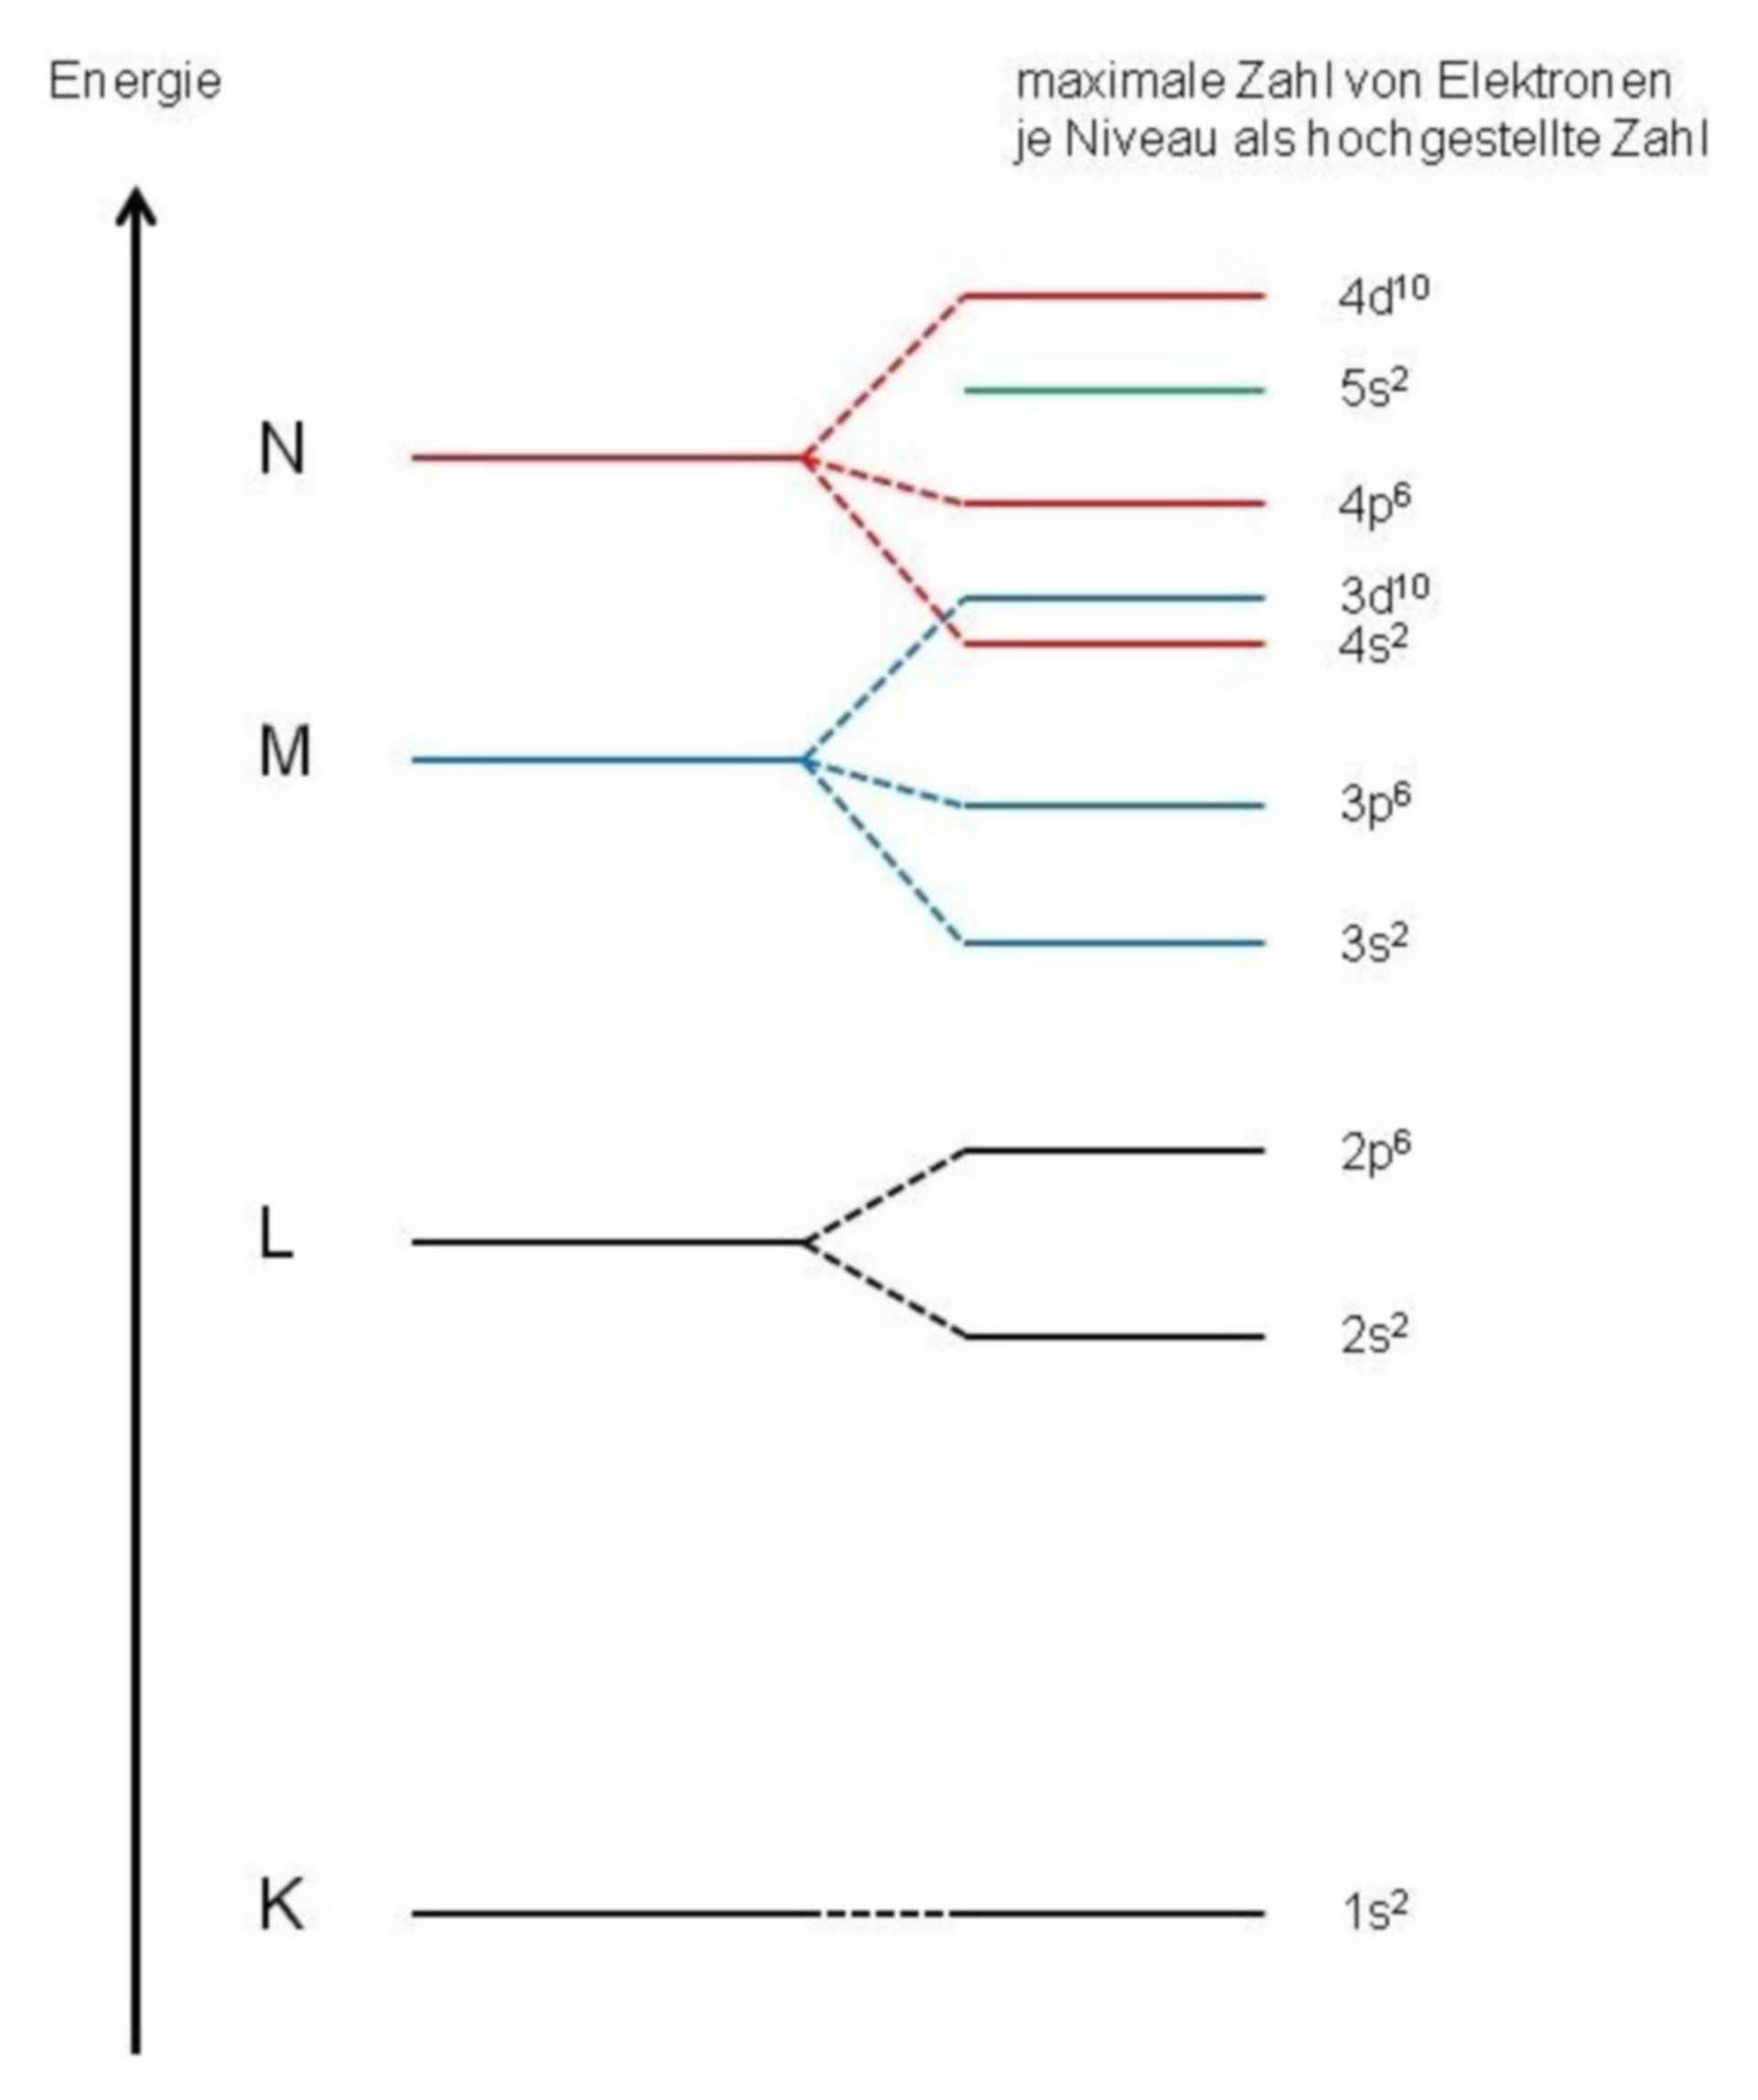 Schematic of energy levels of electrons in an atom